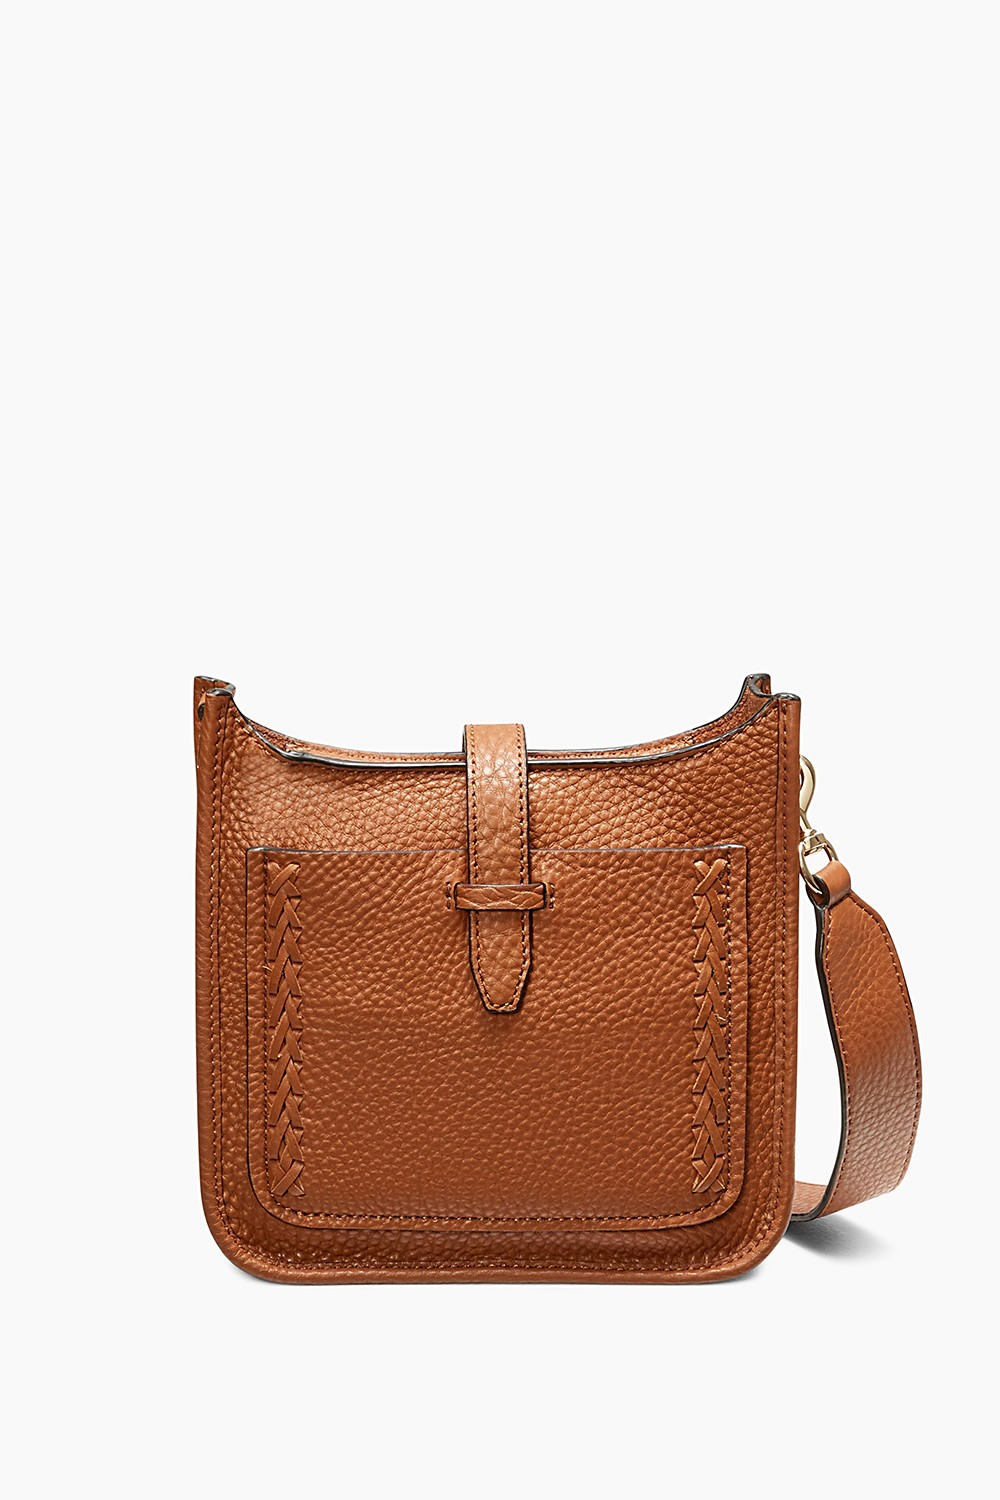 Rebecca Minkoff Unlined Whipstitch Feed Mini Pebbled Leather Crossbody In Almond